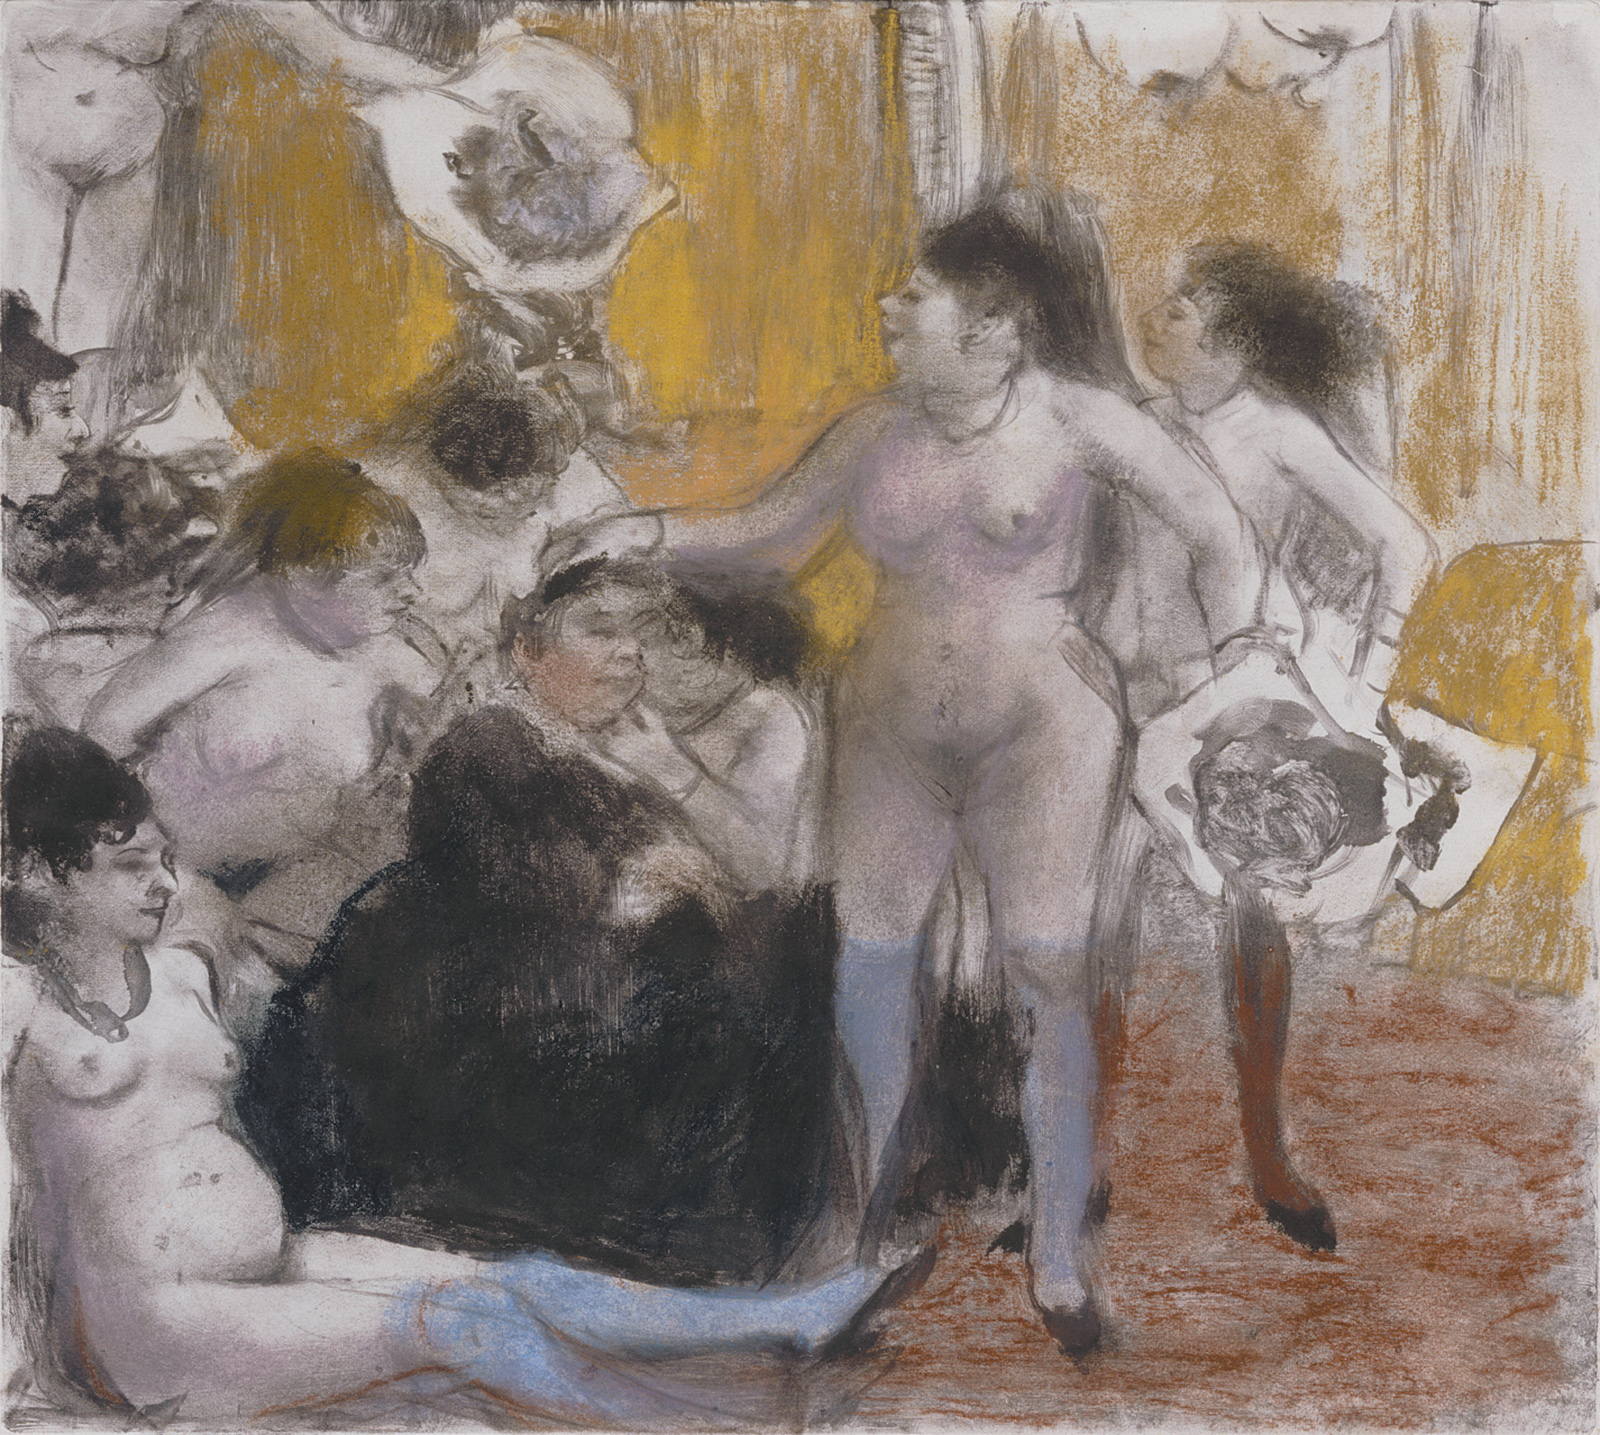 Edgar Degas: The Name Day of the Madam, pastel over monotype on paper, circa 1877–1879